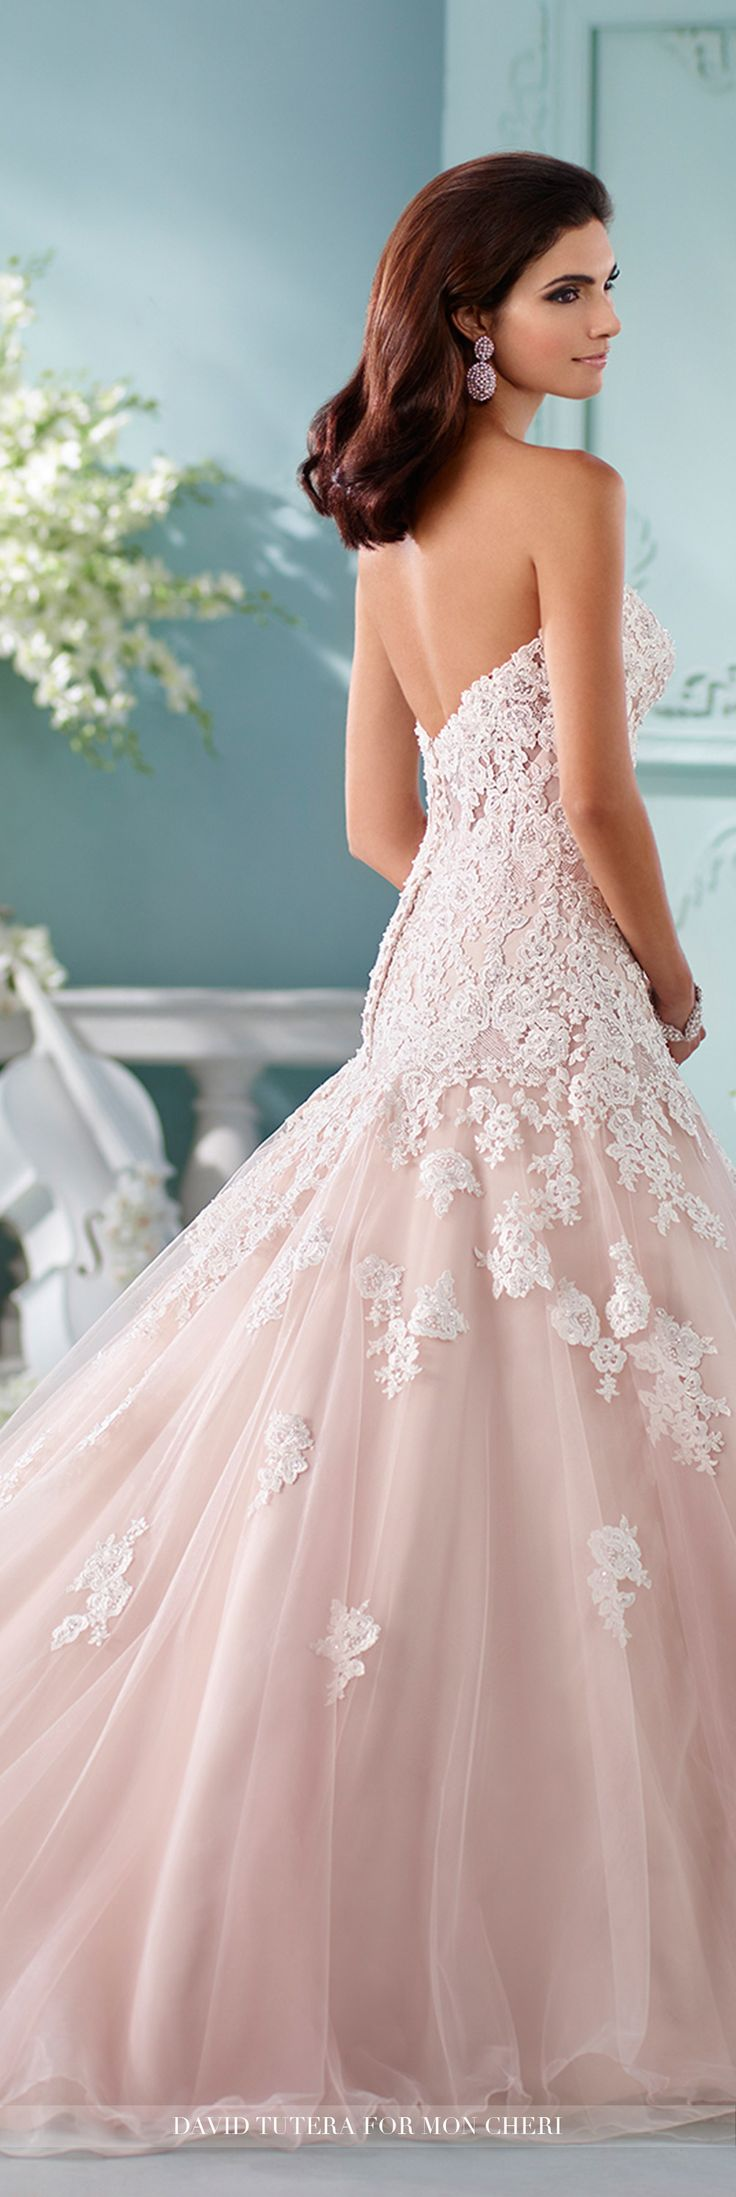 pink lace wedding dress 25 best ideas about blush wedding dresses on 6585